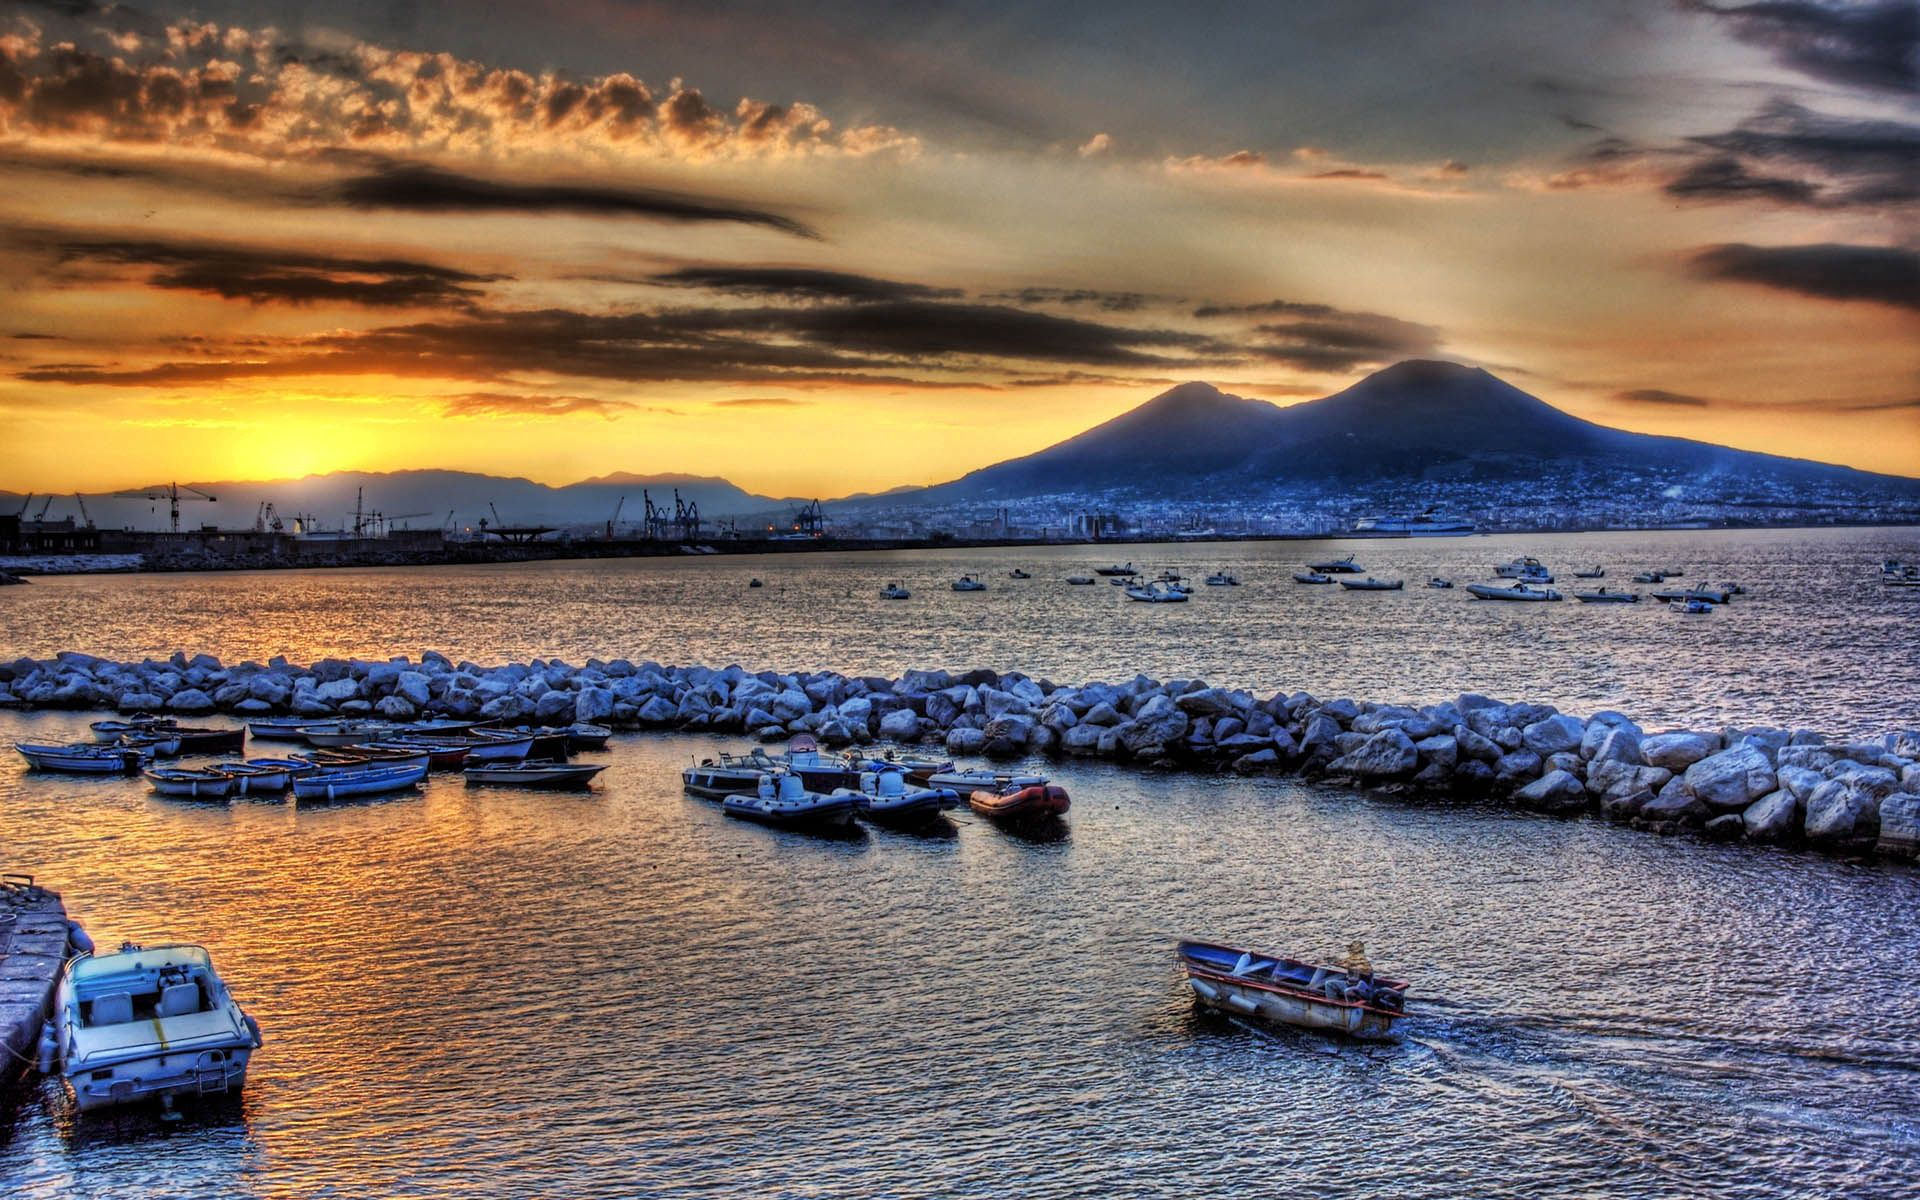 111655 download wallpaper Nature, Boats, Ships, Court, Sea, Stones, Sky, Evening, Mountains screensavers and pictures for free